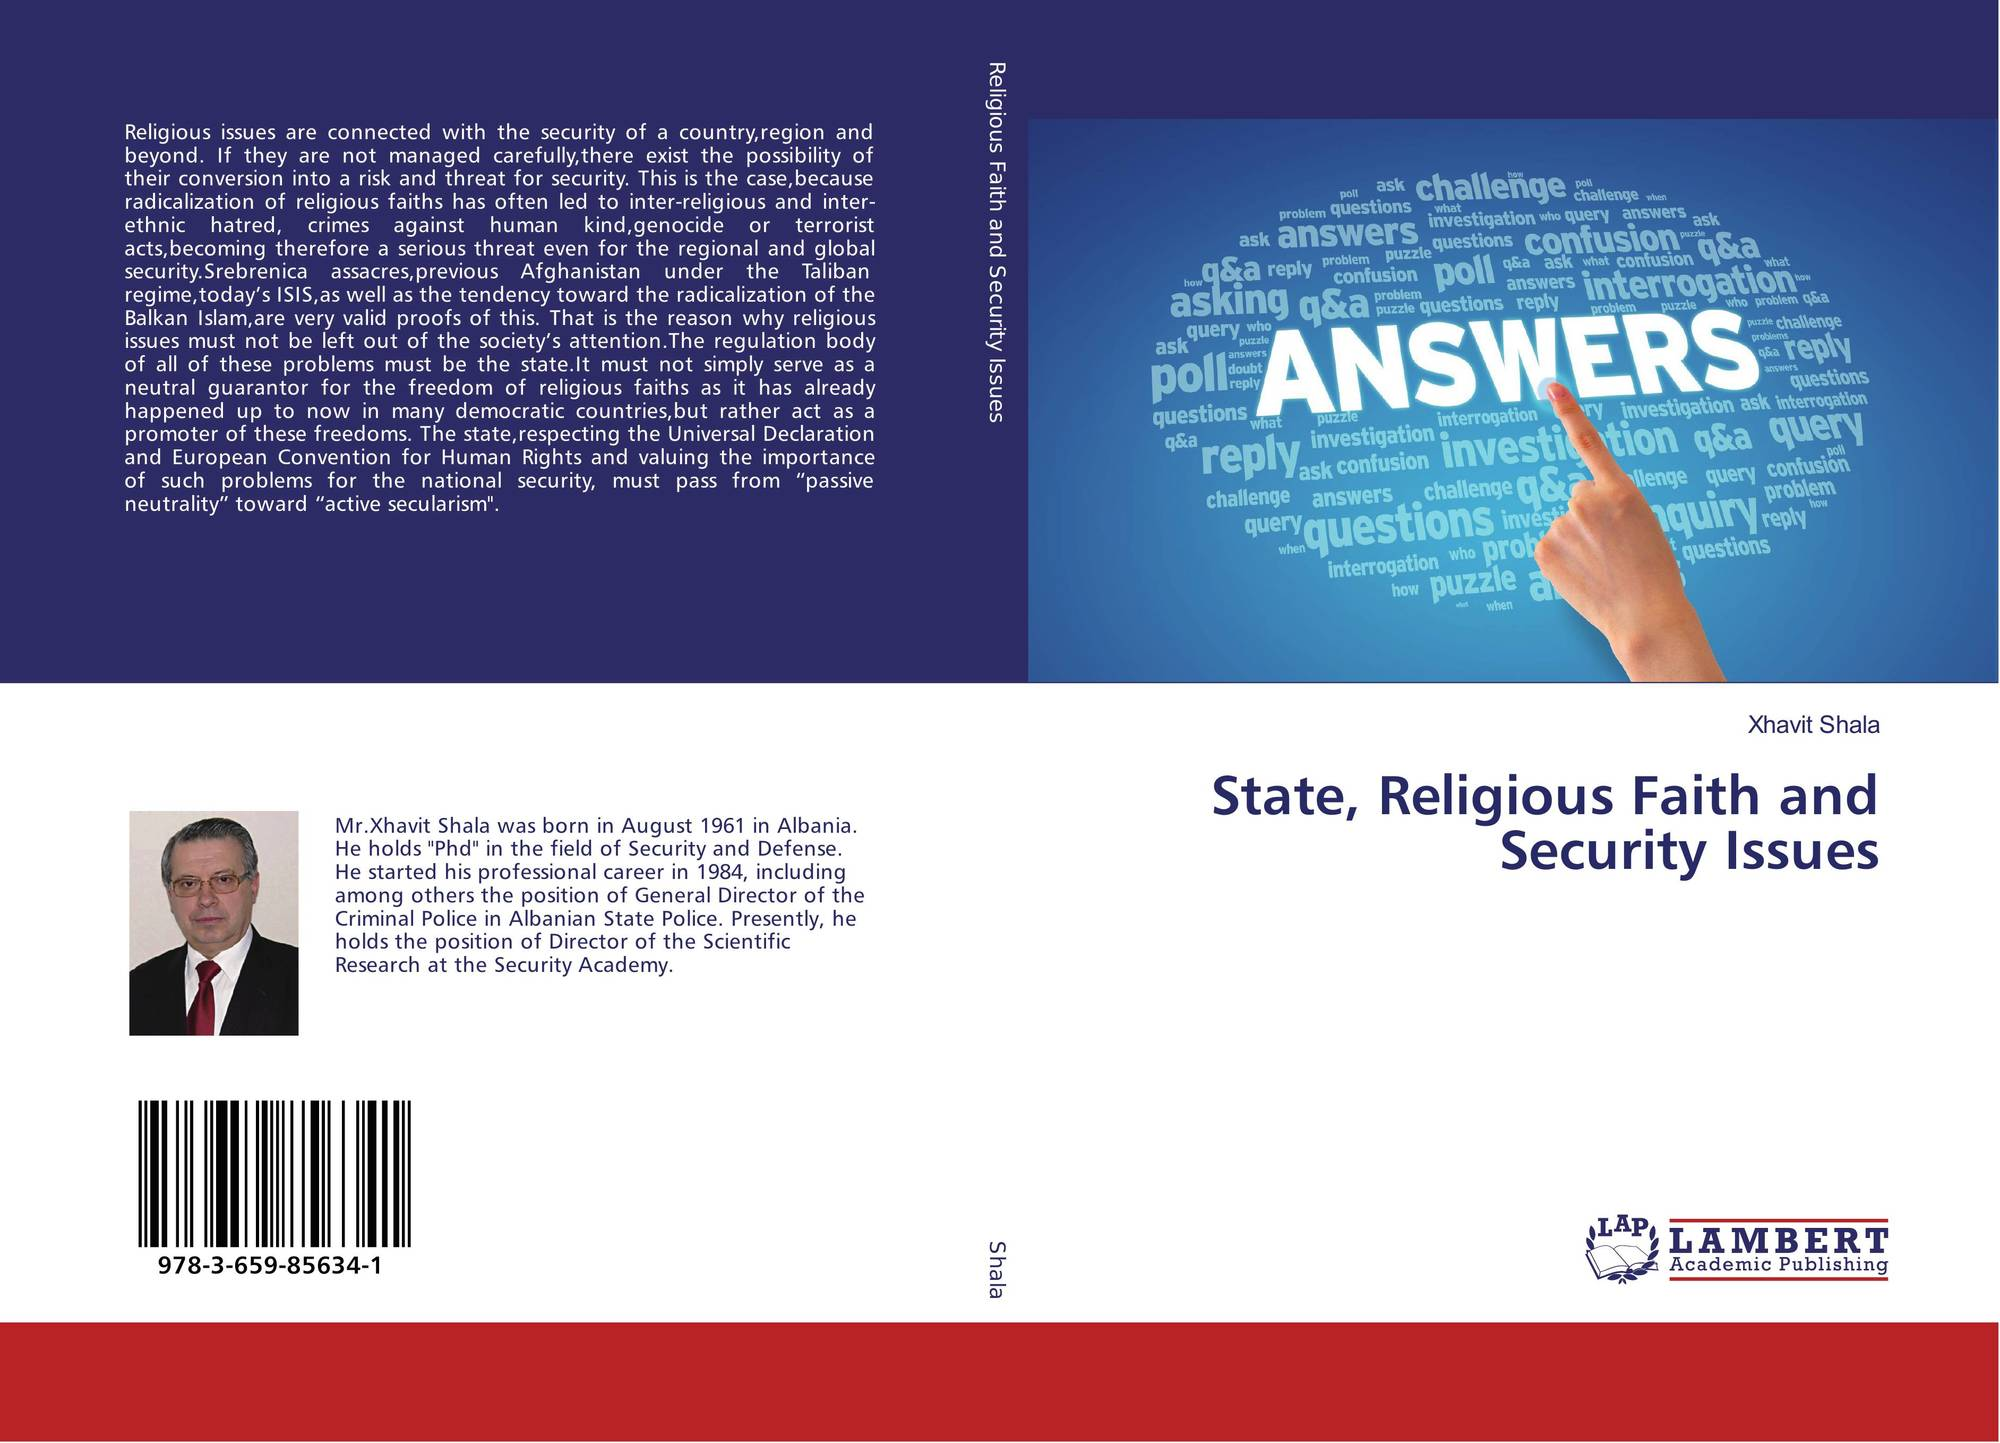 Creative And Academic Freedom Under Threat From Religious: State, Religious Faith And Security Issues, 978-3-659